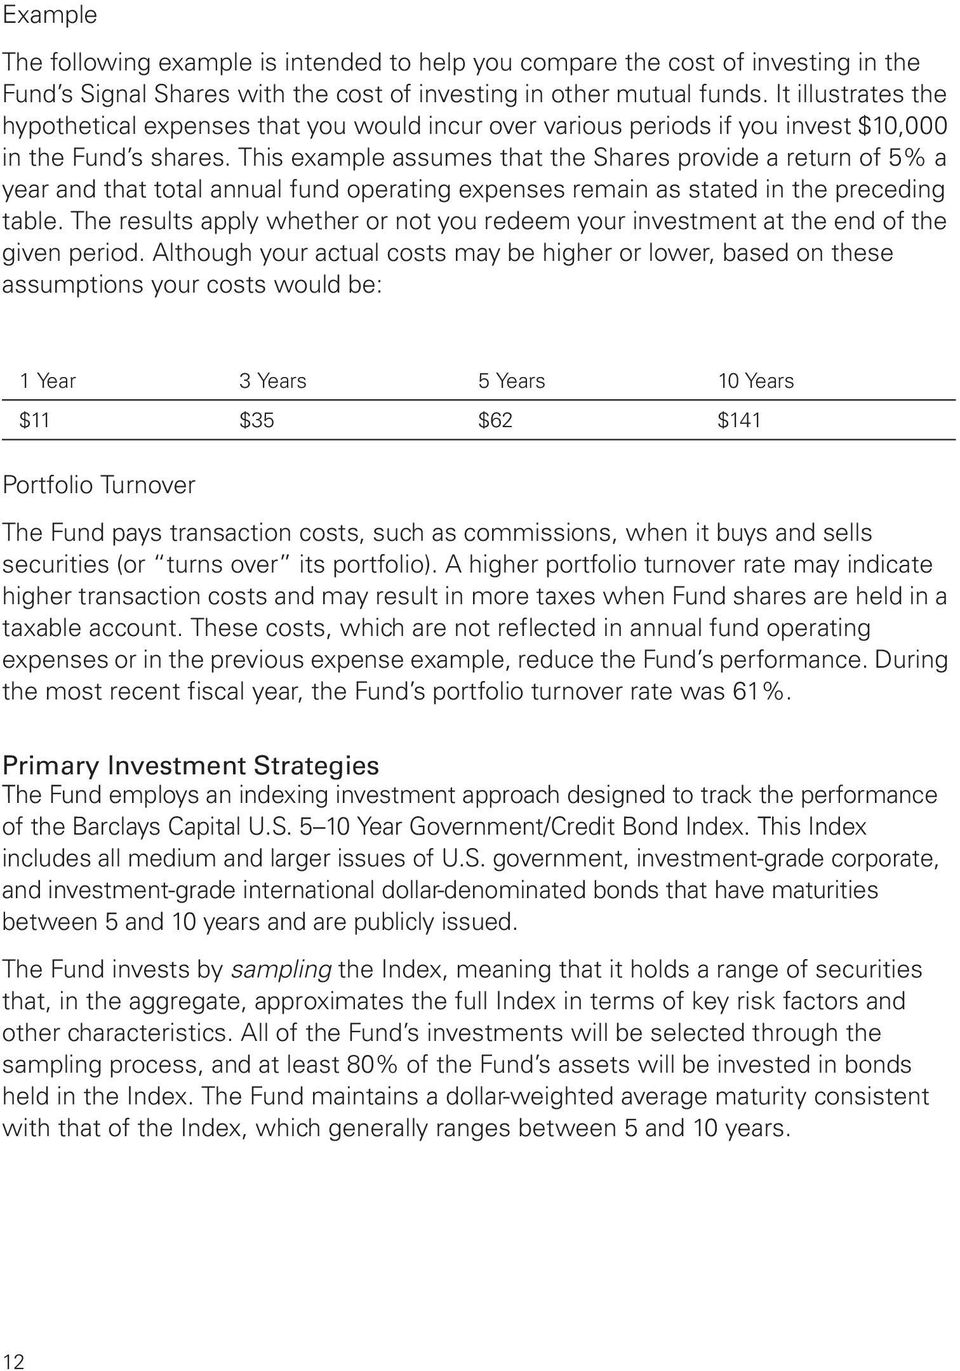 This example assumes that the Shares provide a return of 5% a year and that total annual fund operating expenses remain as stated in the preceding table.